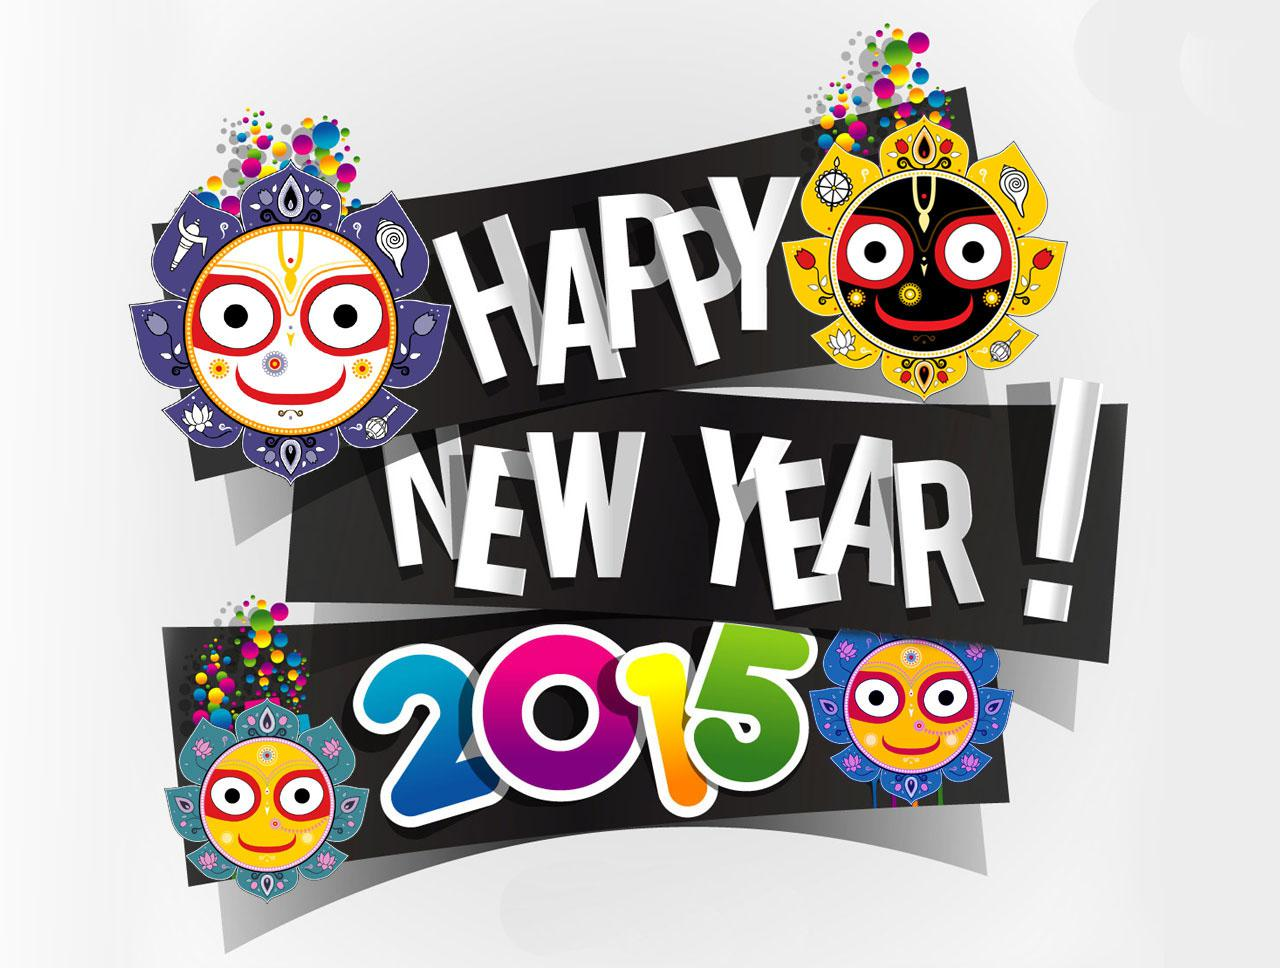 Happy New Year 2015 Clip Art Images Free Download   Netherton Moss Co